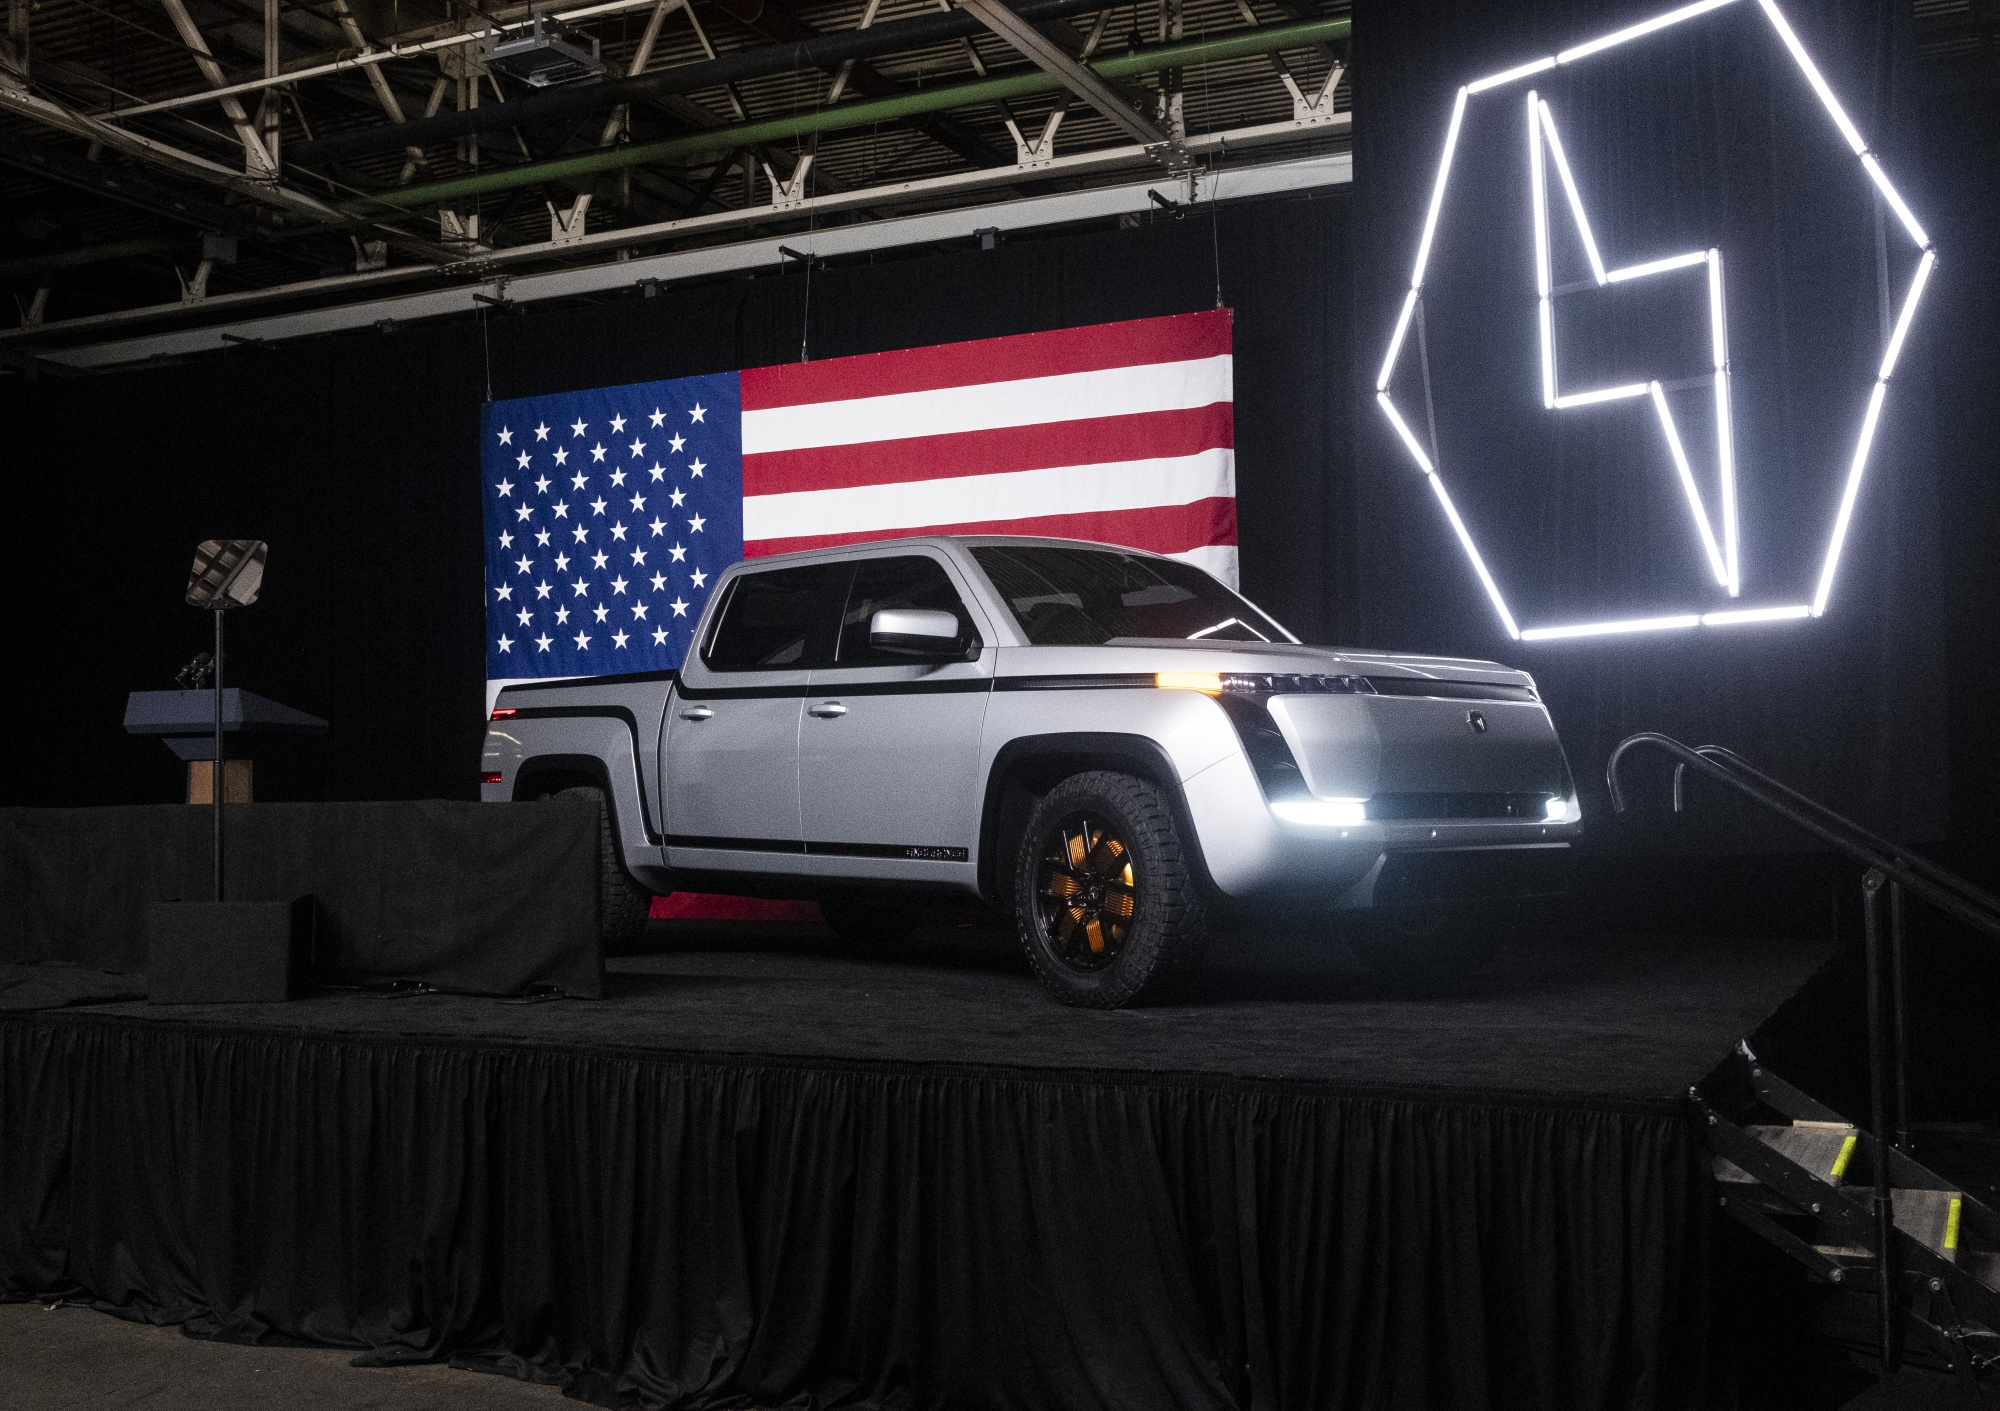 The Lordstown Motors Corp. Endurance electric pickup truck